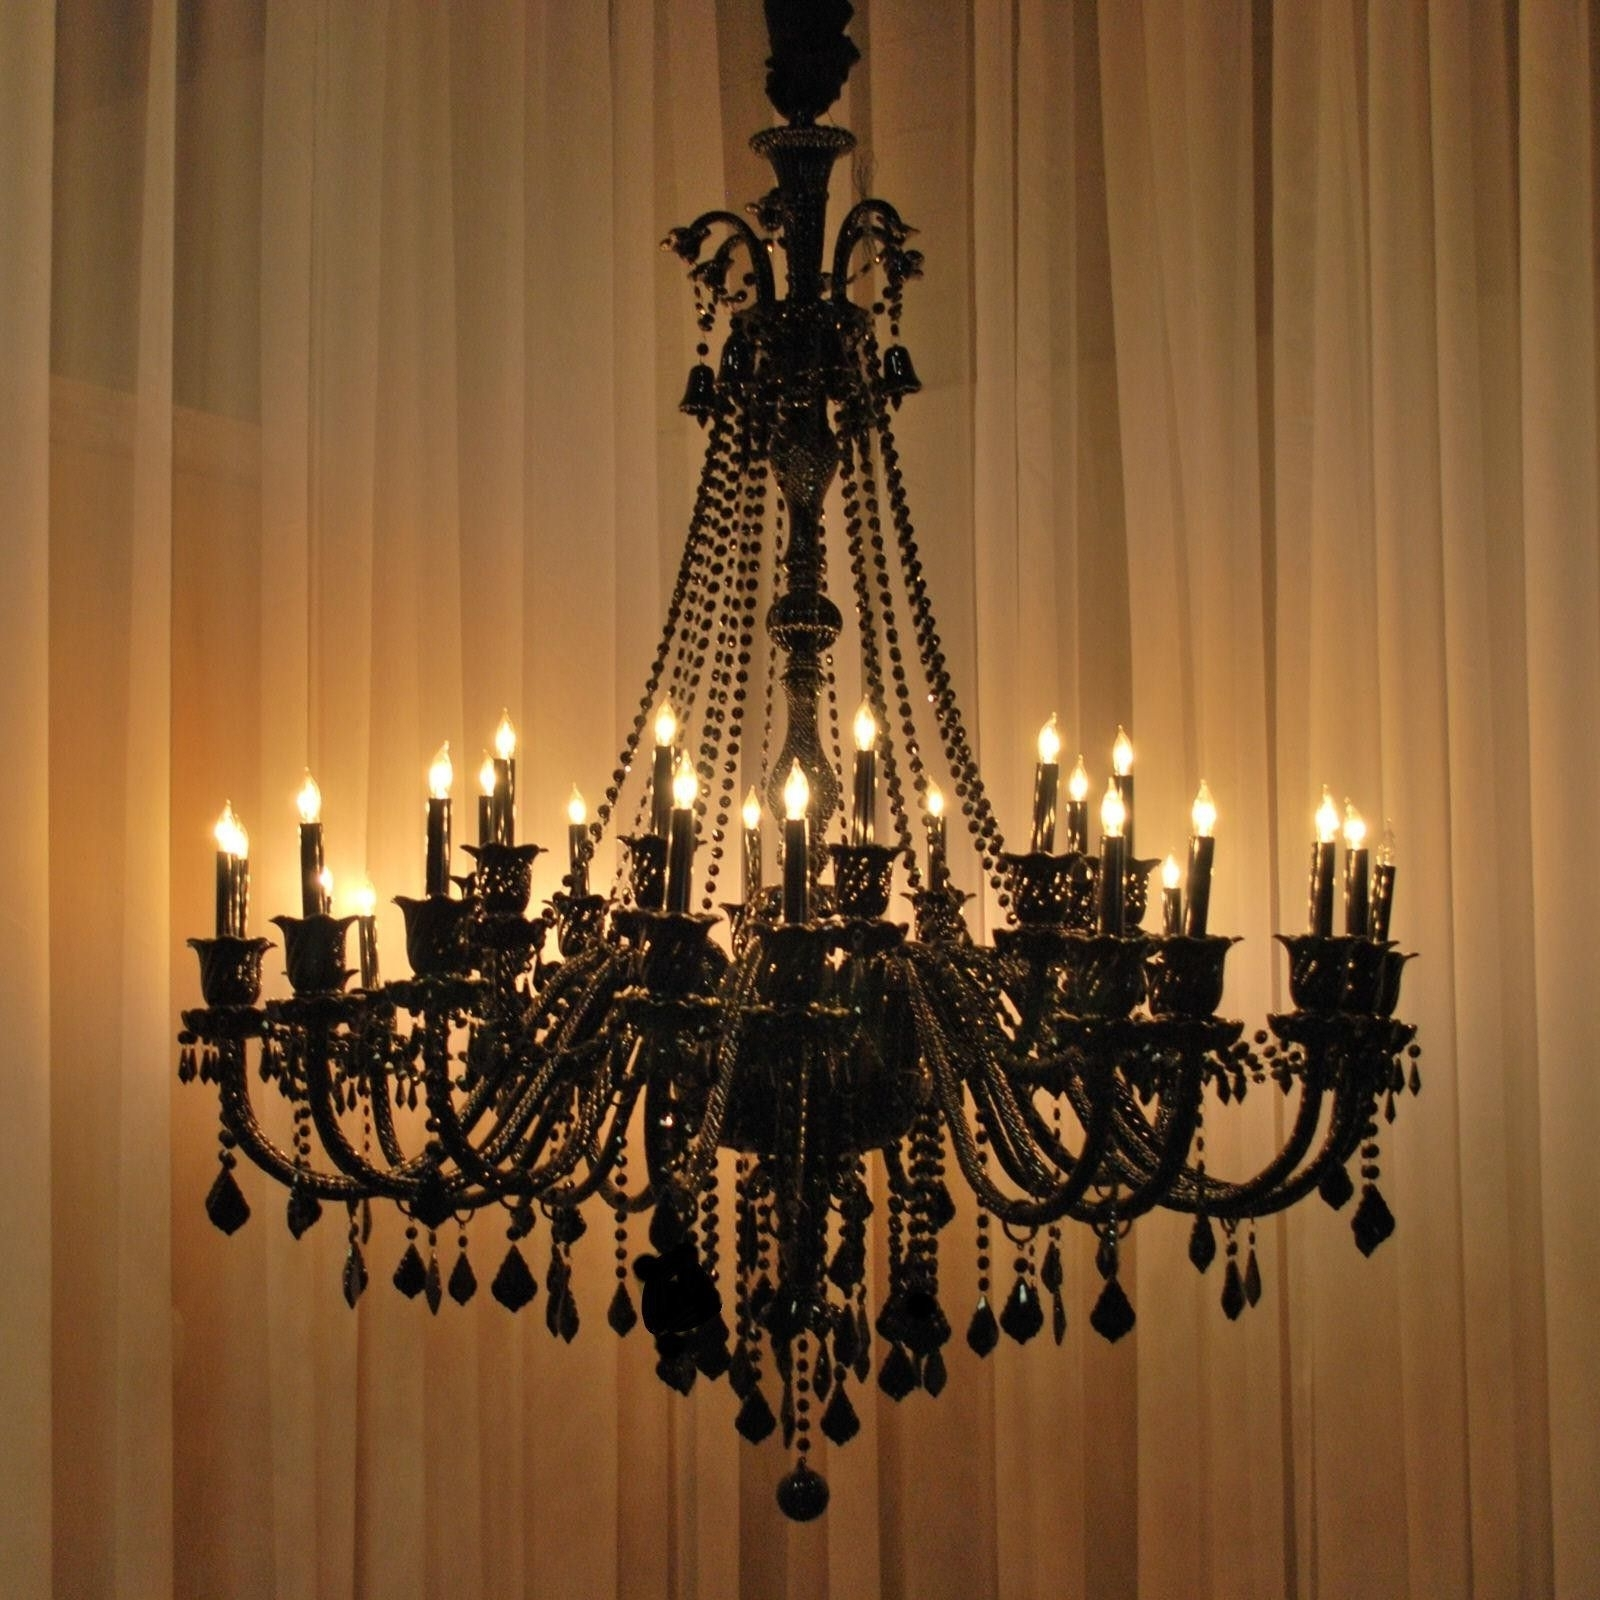 Interesting Chandeliers With Extra Large Crystal Chandeliers (View 11 of 20)